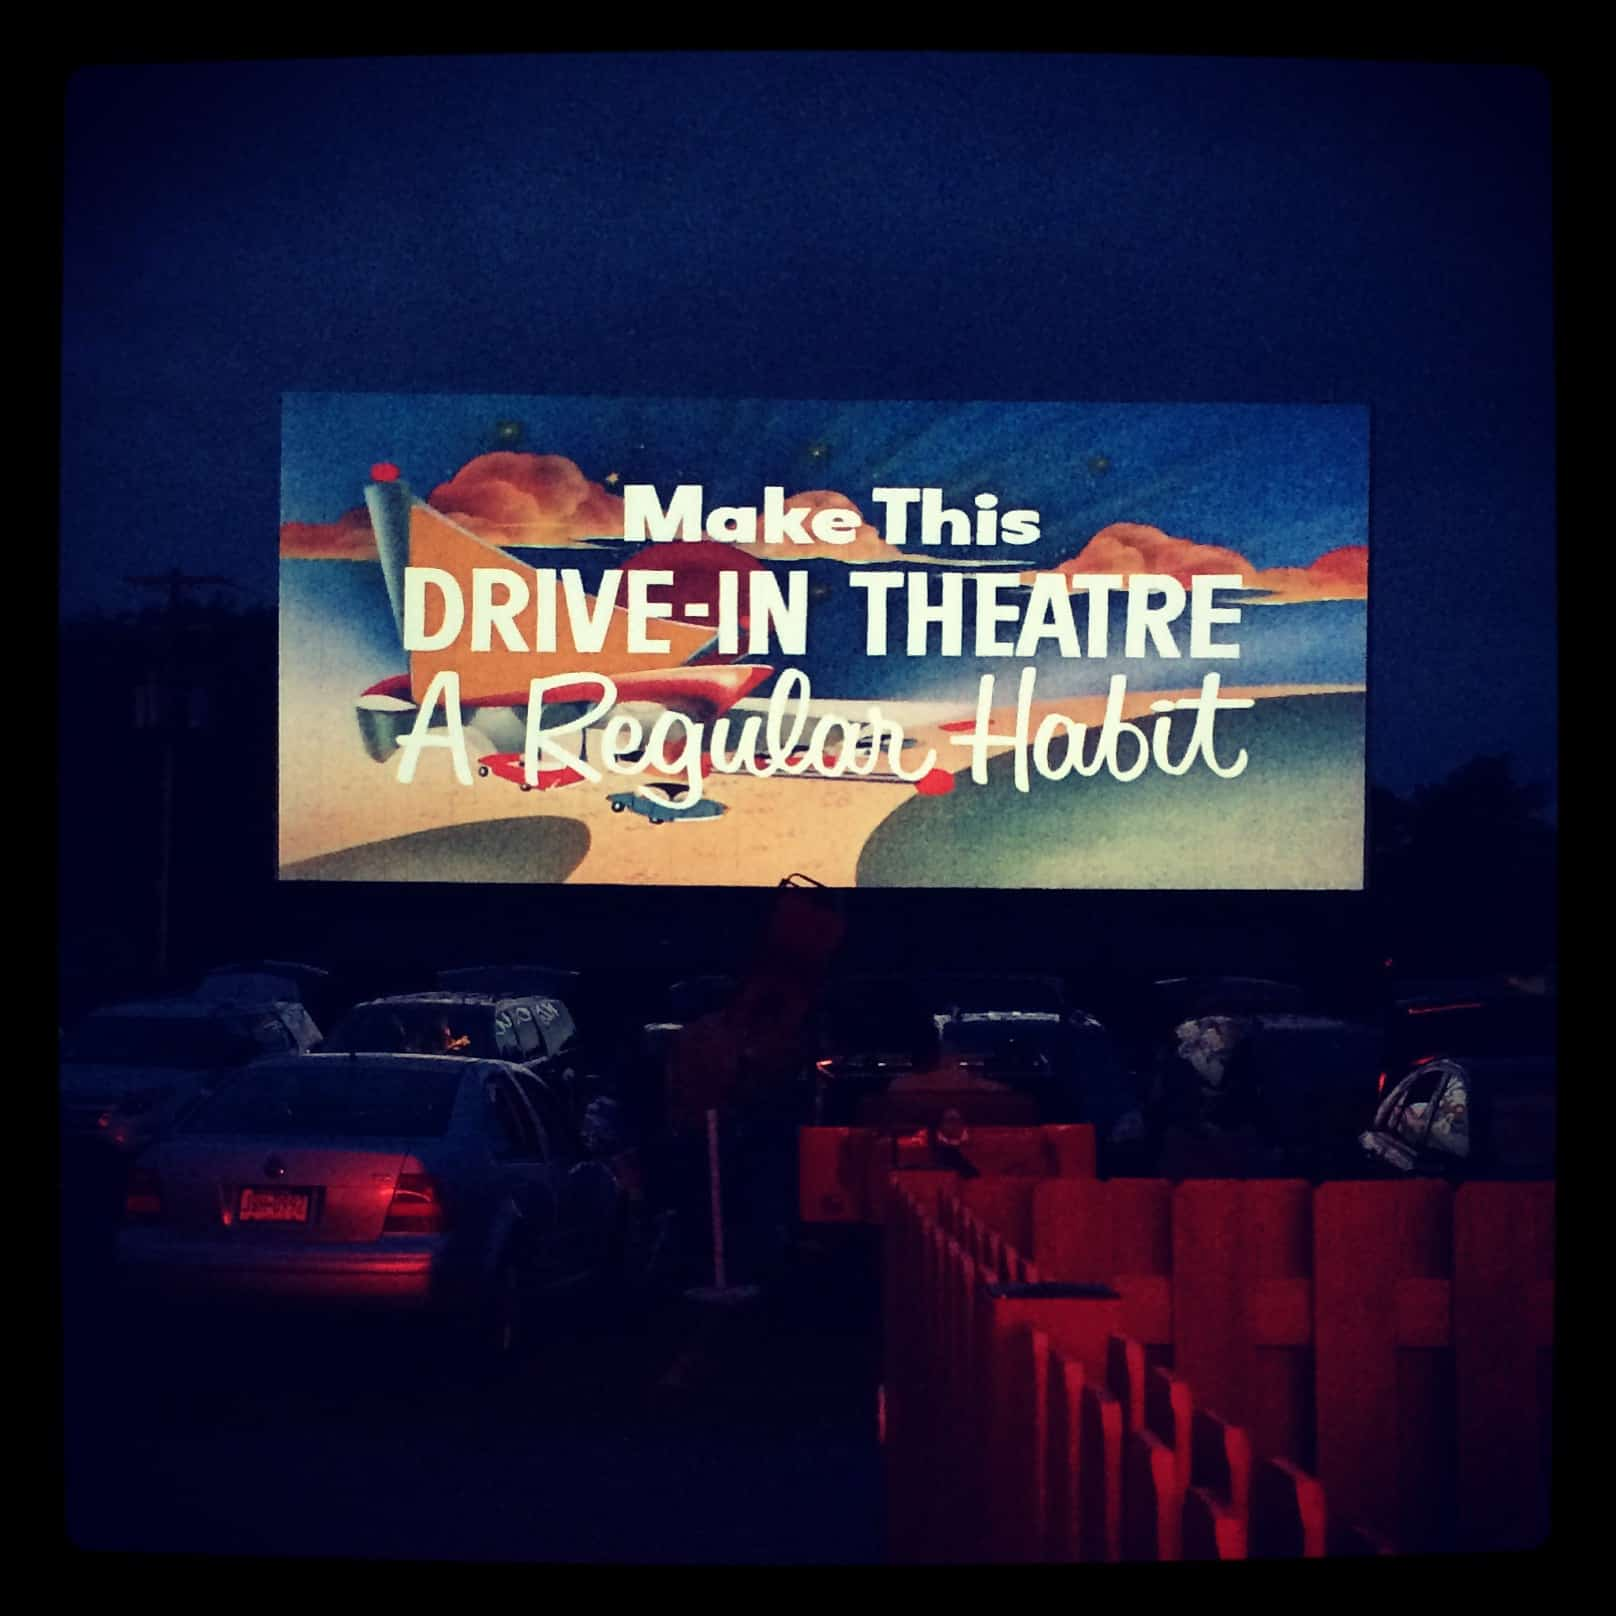 Drive In Theater Riverdale Ut Motor Vu Drive In Swap Meet Movie Theater Retro Roadmap